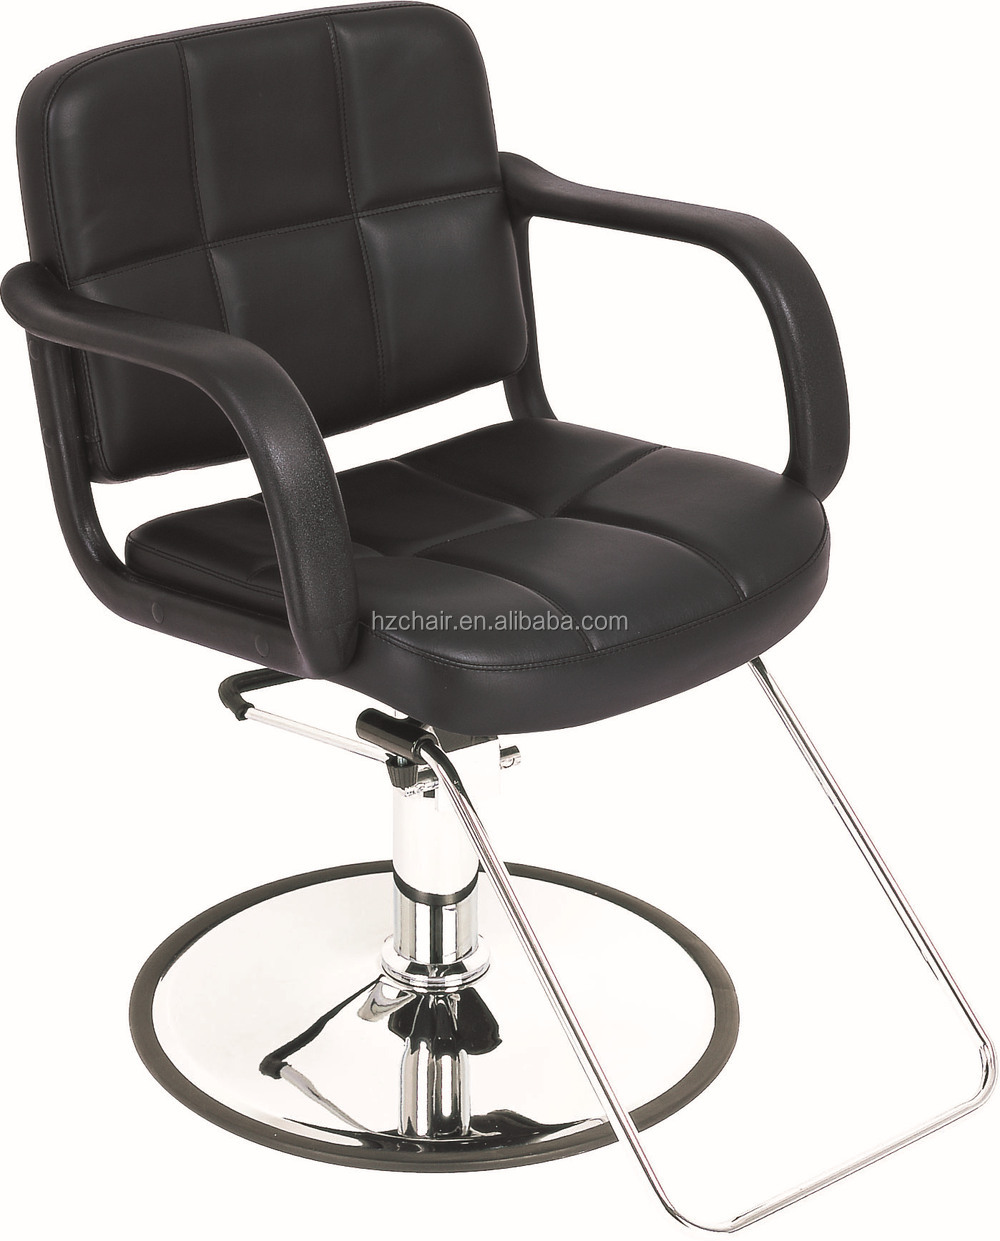 Black salon chairs - 2015 Classic Portable Hairdressing Chairs With Hand Shaped Chairs Popular Black Chairs